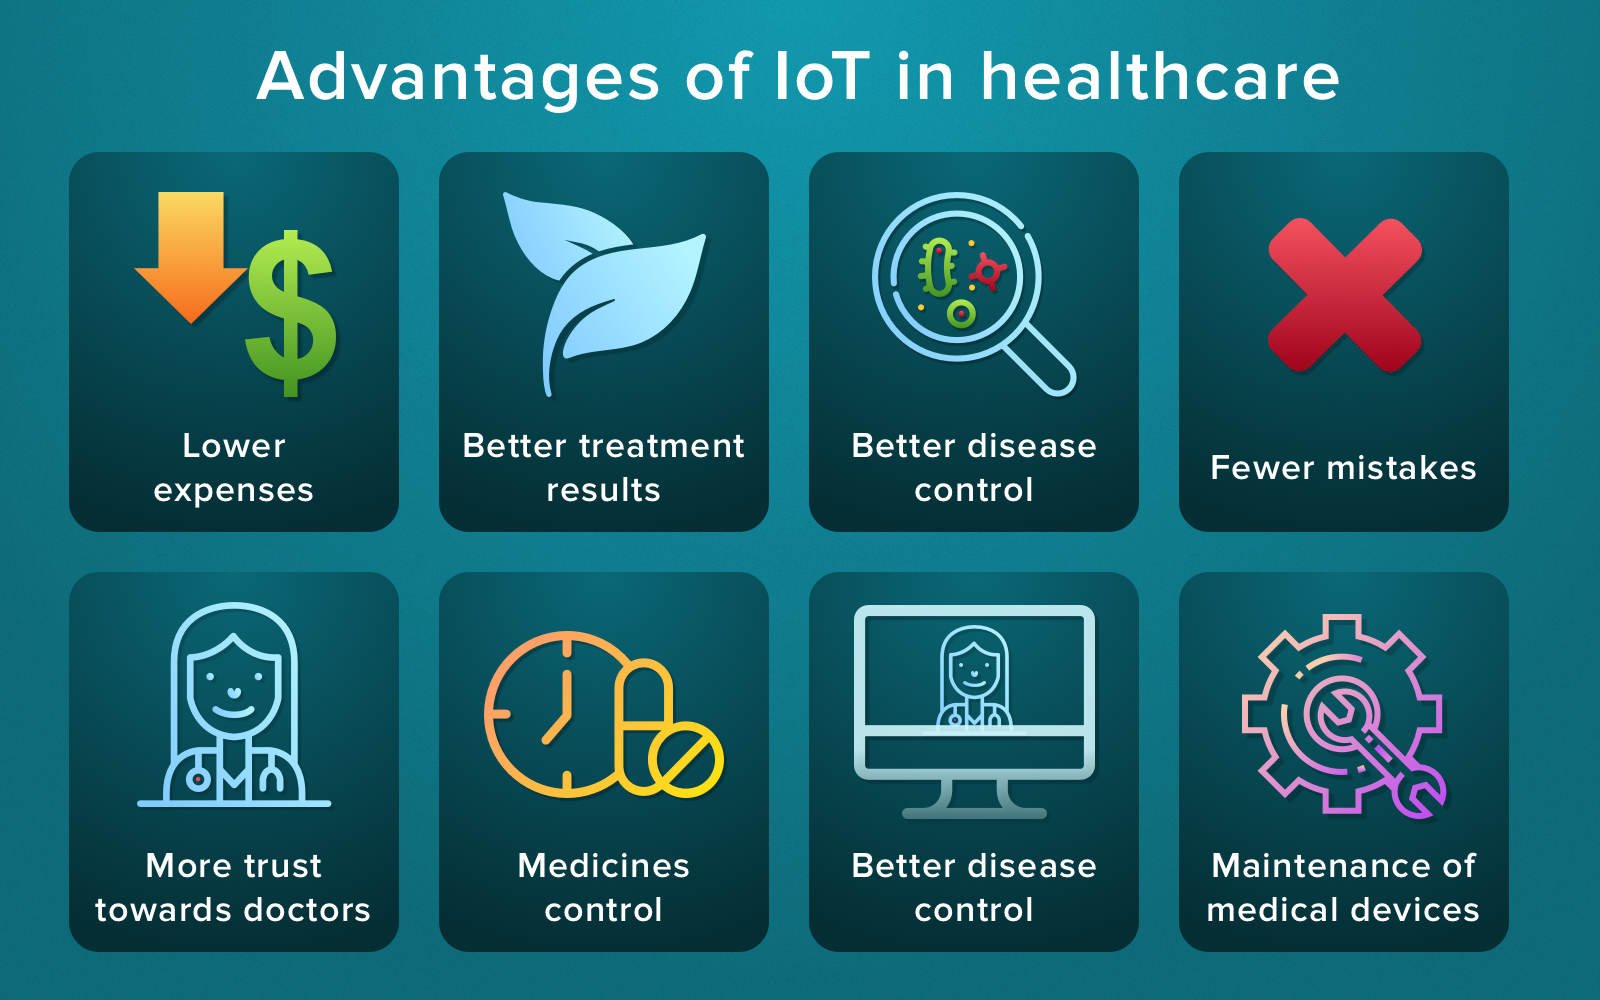 IoT In Healthcare: How It Improves Medical Software